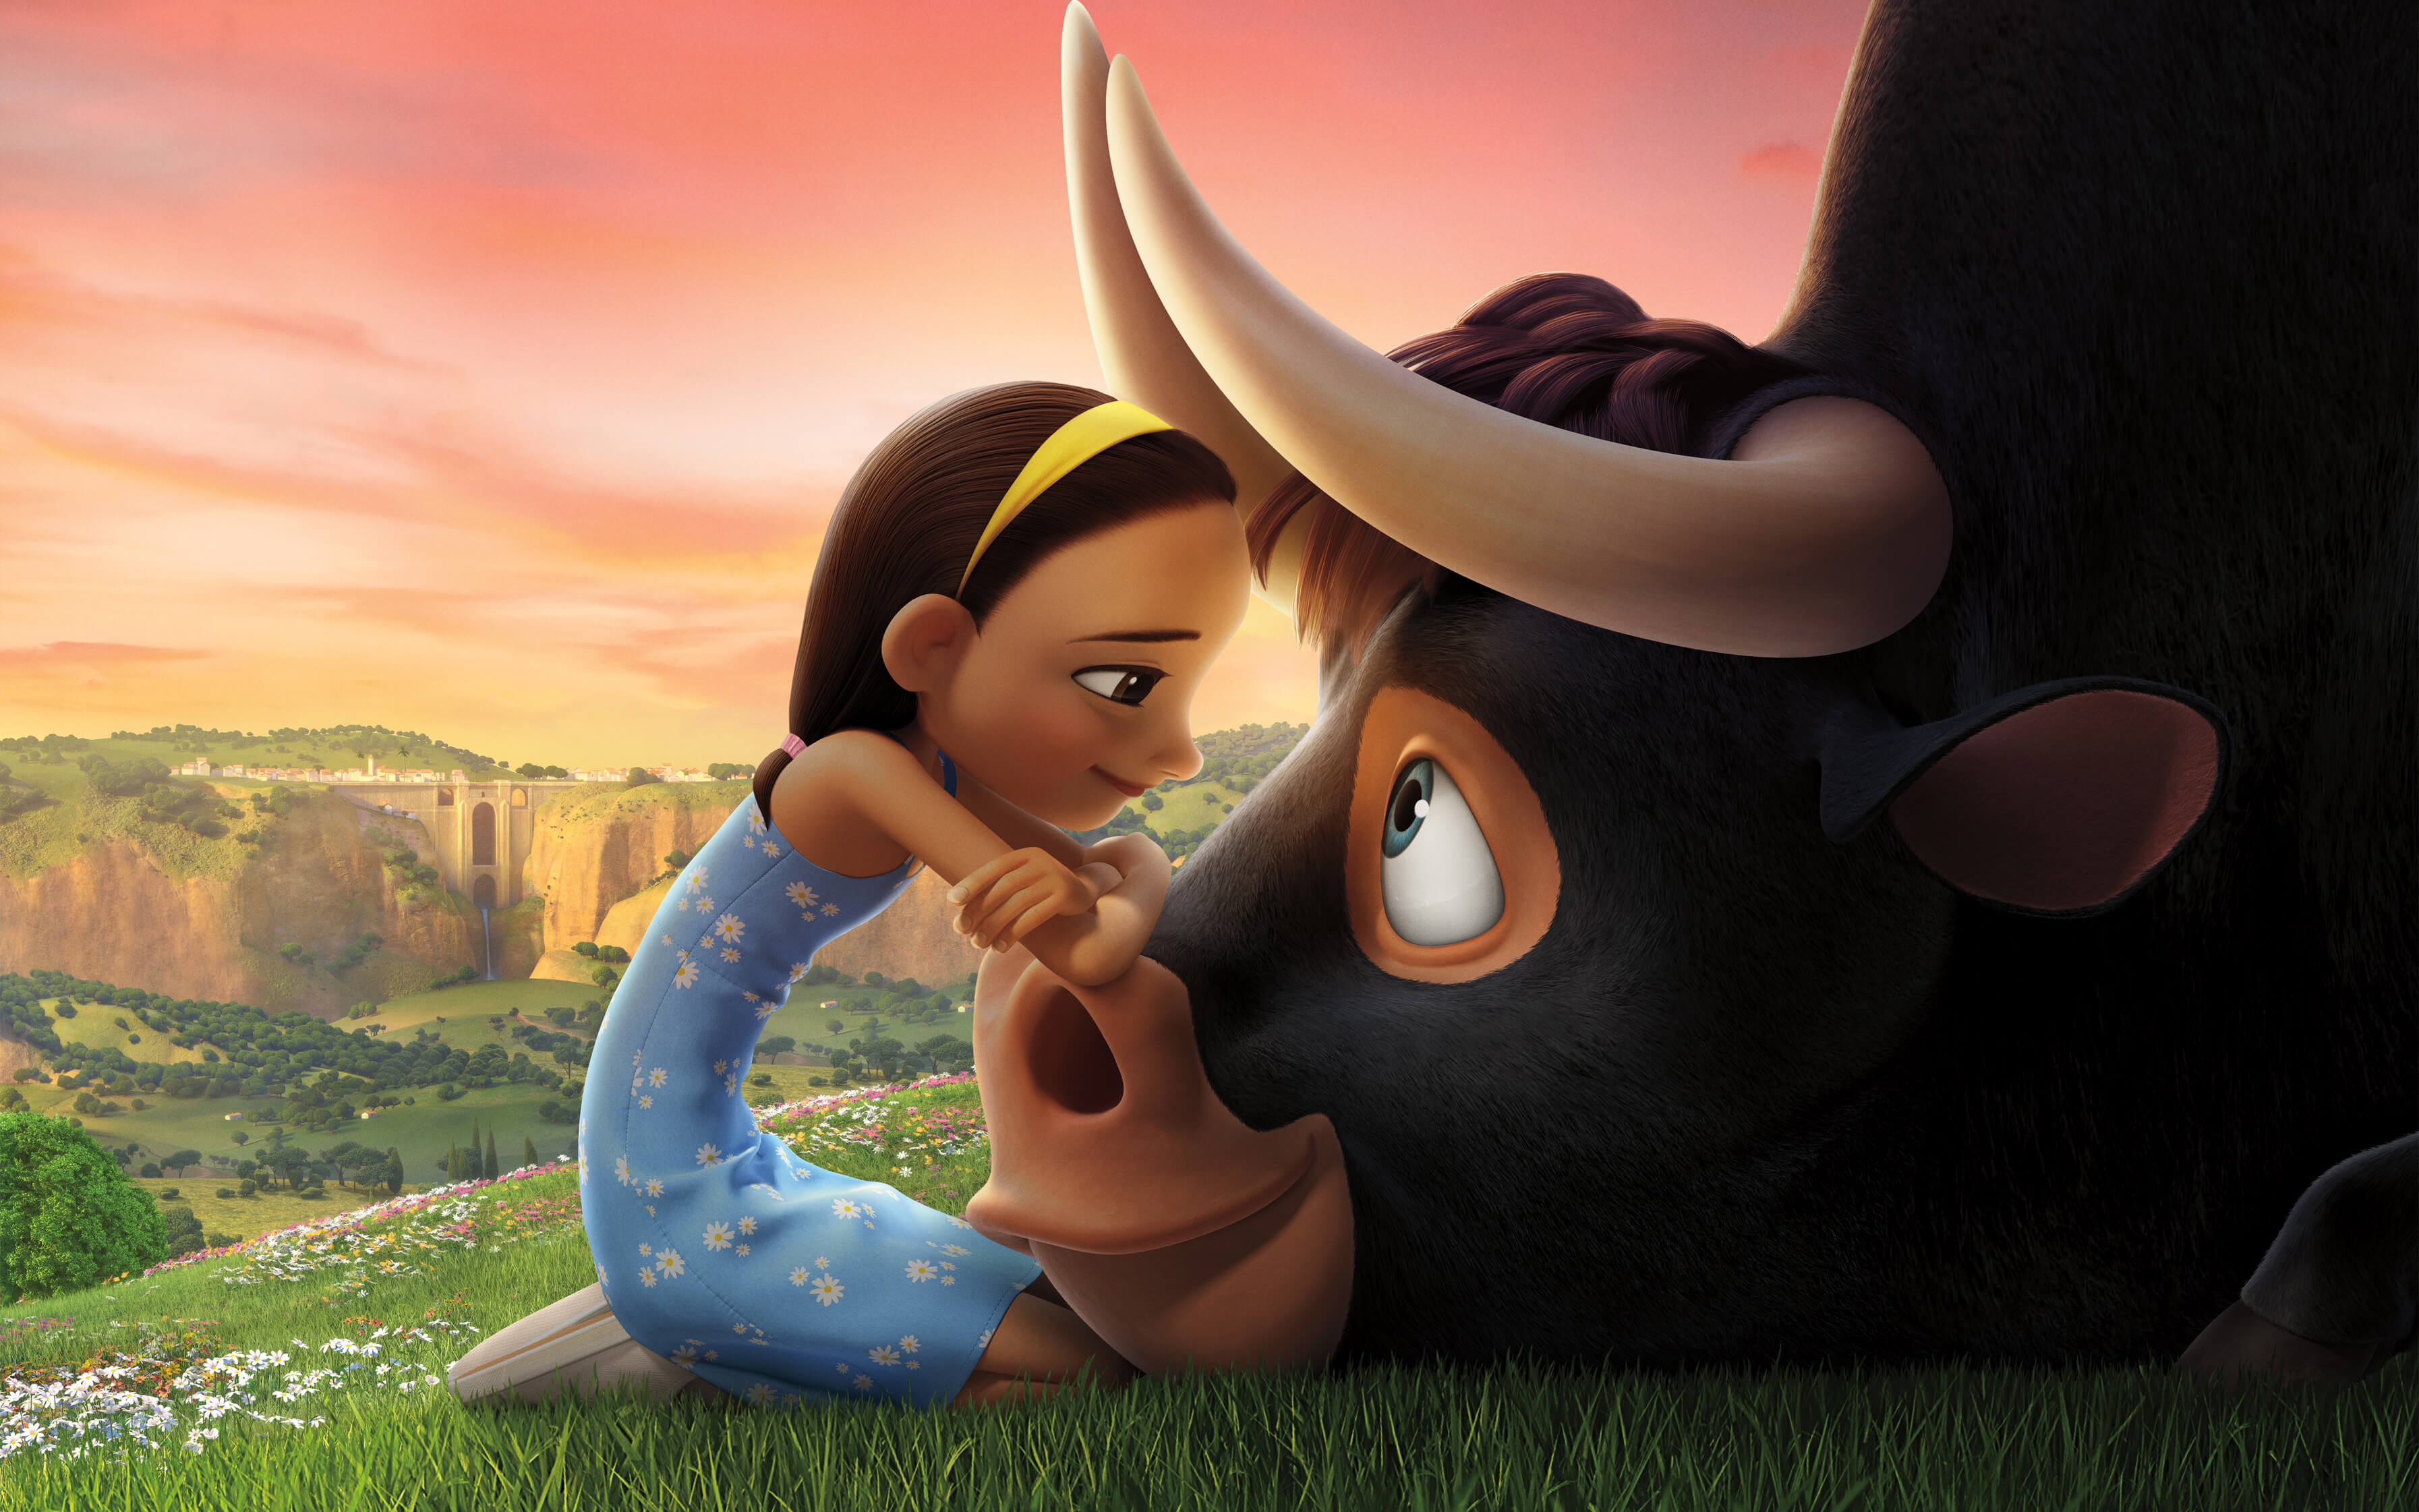 ferdinand movie 4k widescreen desktop wallpaper 1431